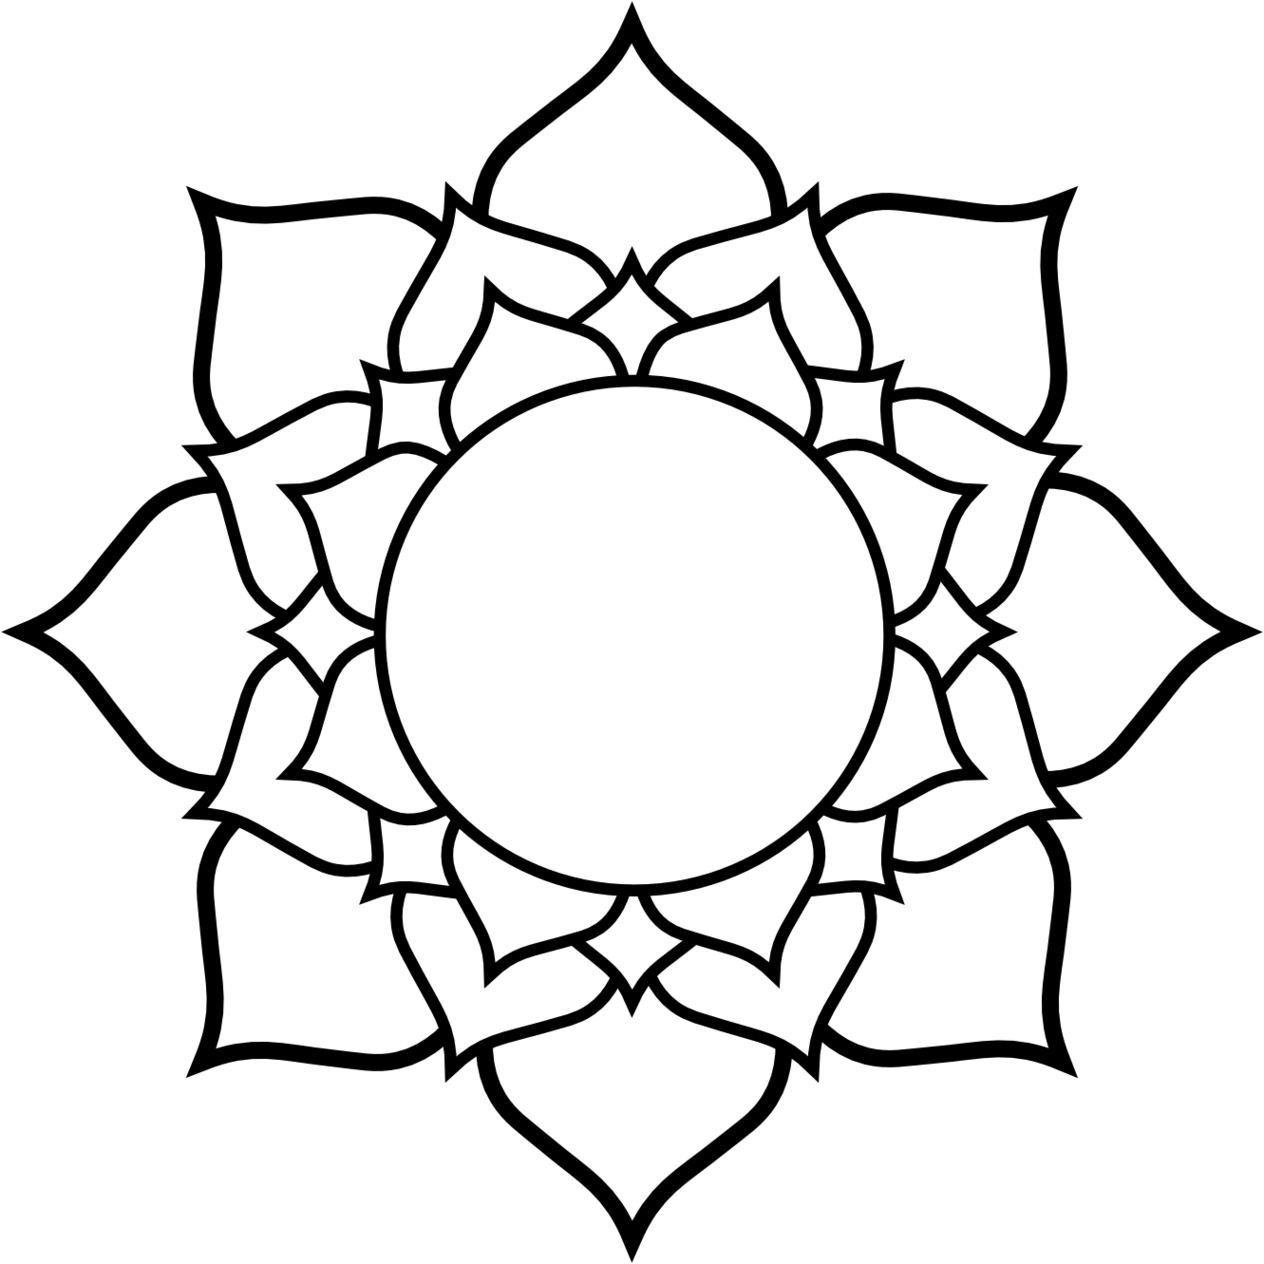 1264x1264 Lotus Clipart Line Drawing